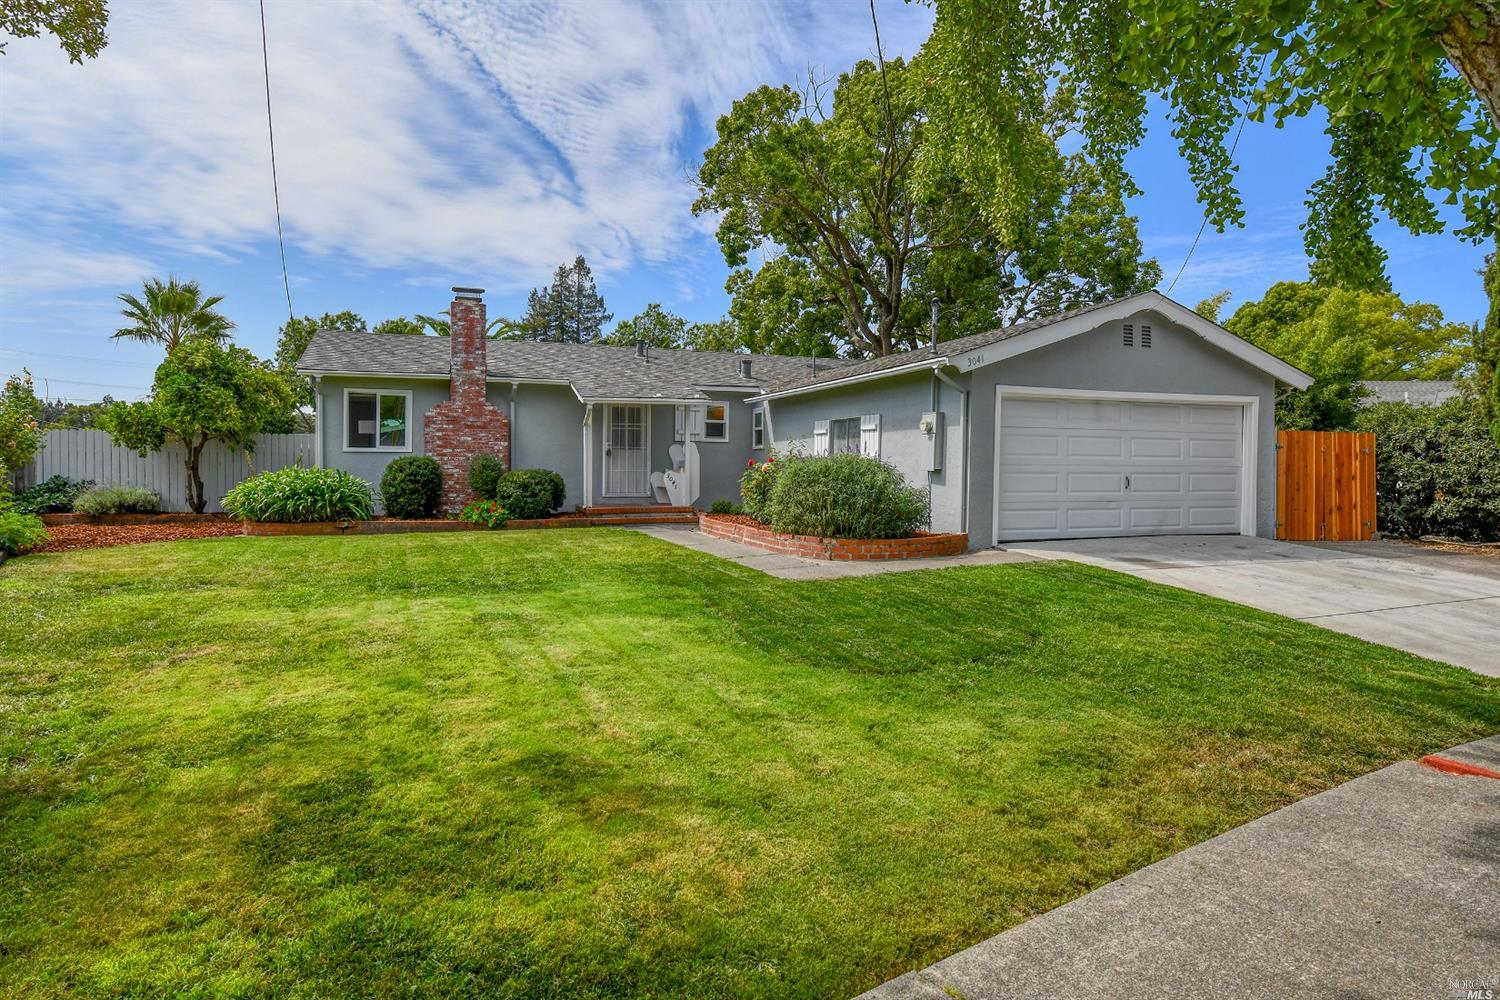 Welcome to this nicely updated 3 bedroom, 2 bath single-level 1128+-sq.ft. Napa home on a charming l